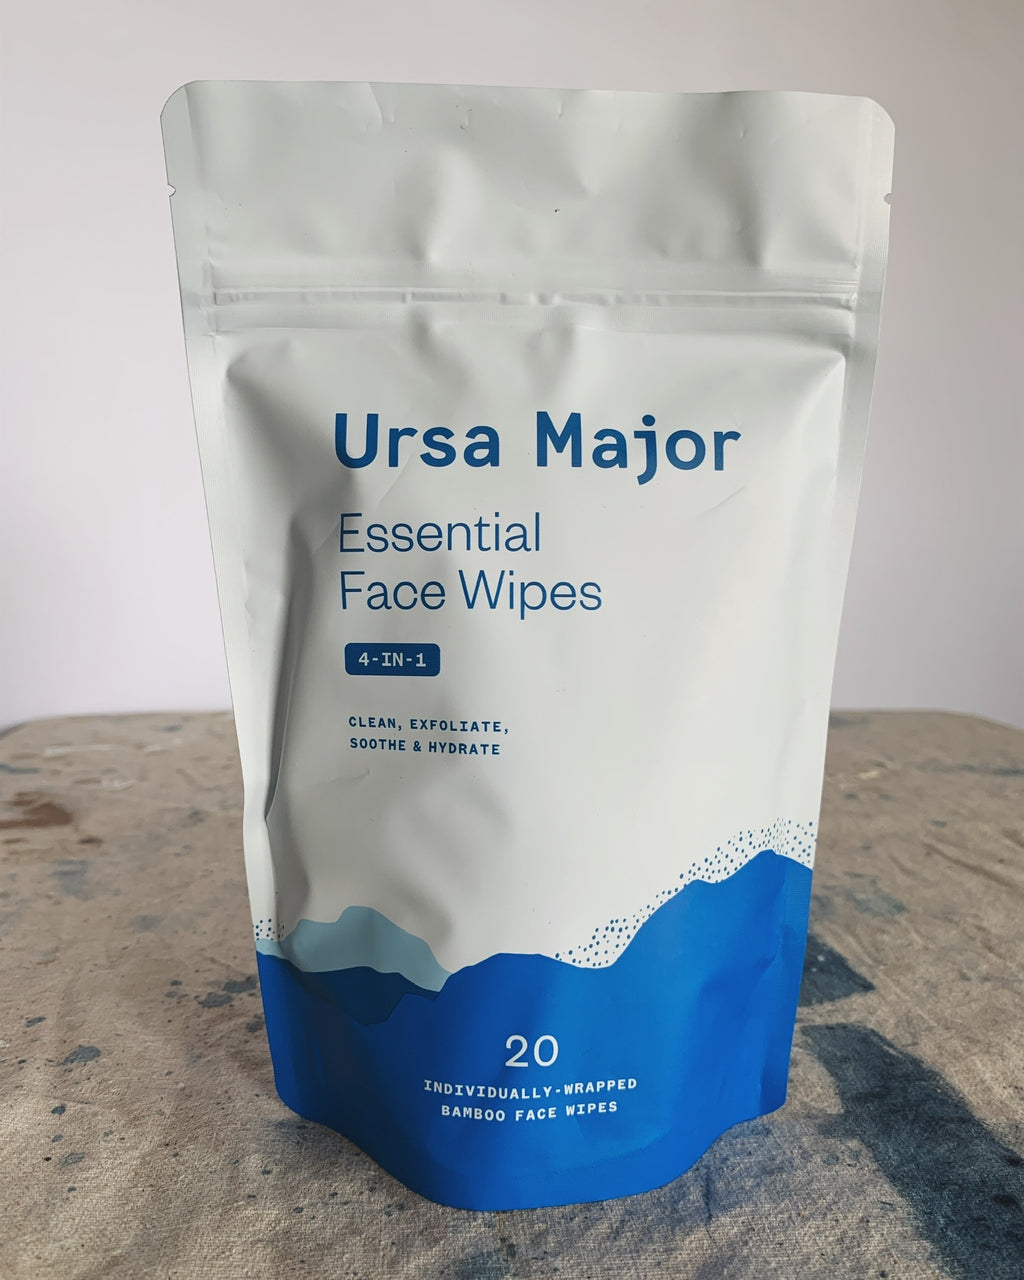 4-in-1 Essential Face Wipes